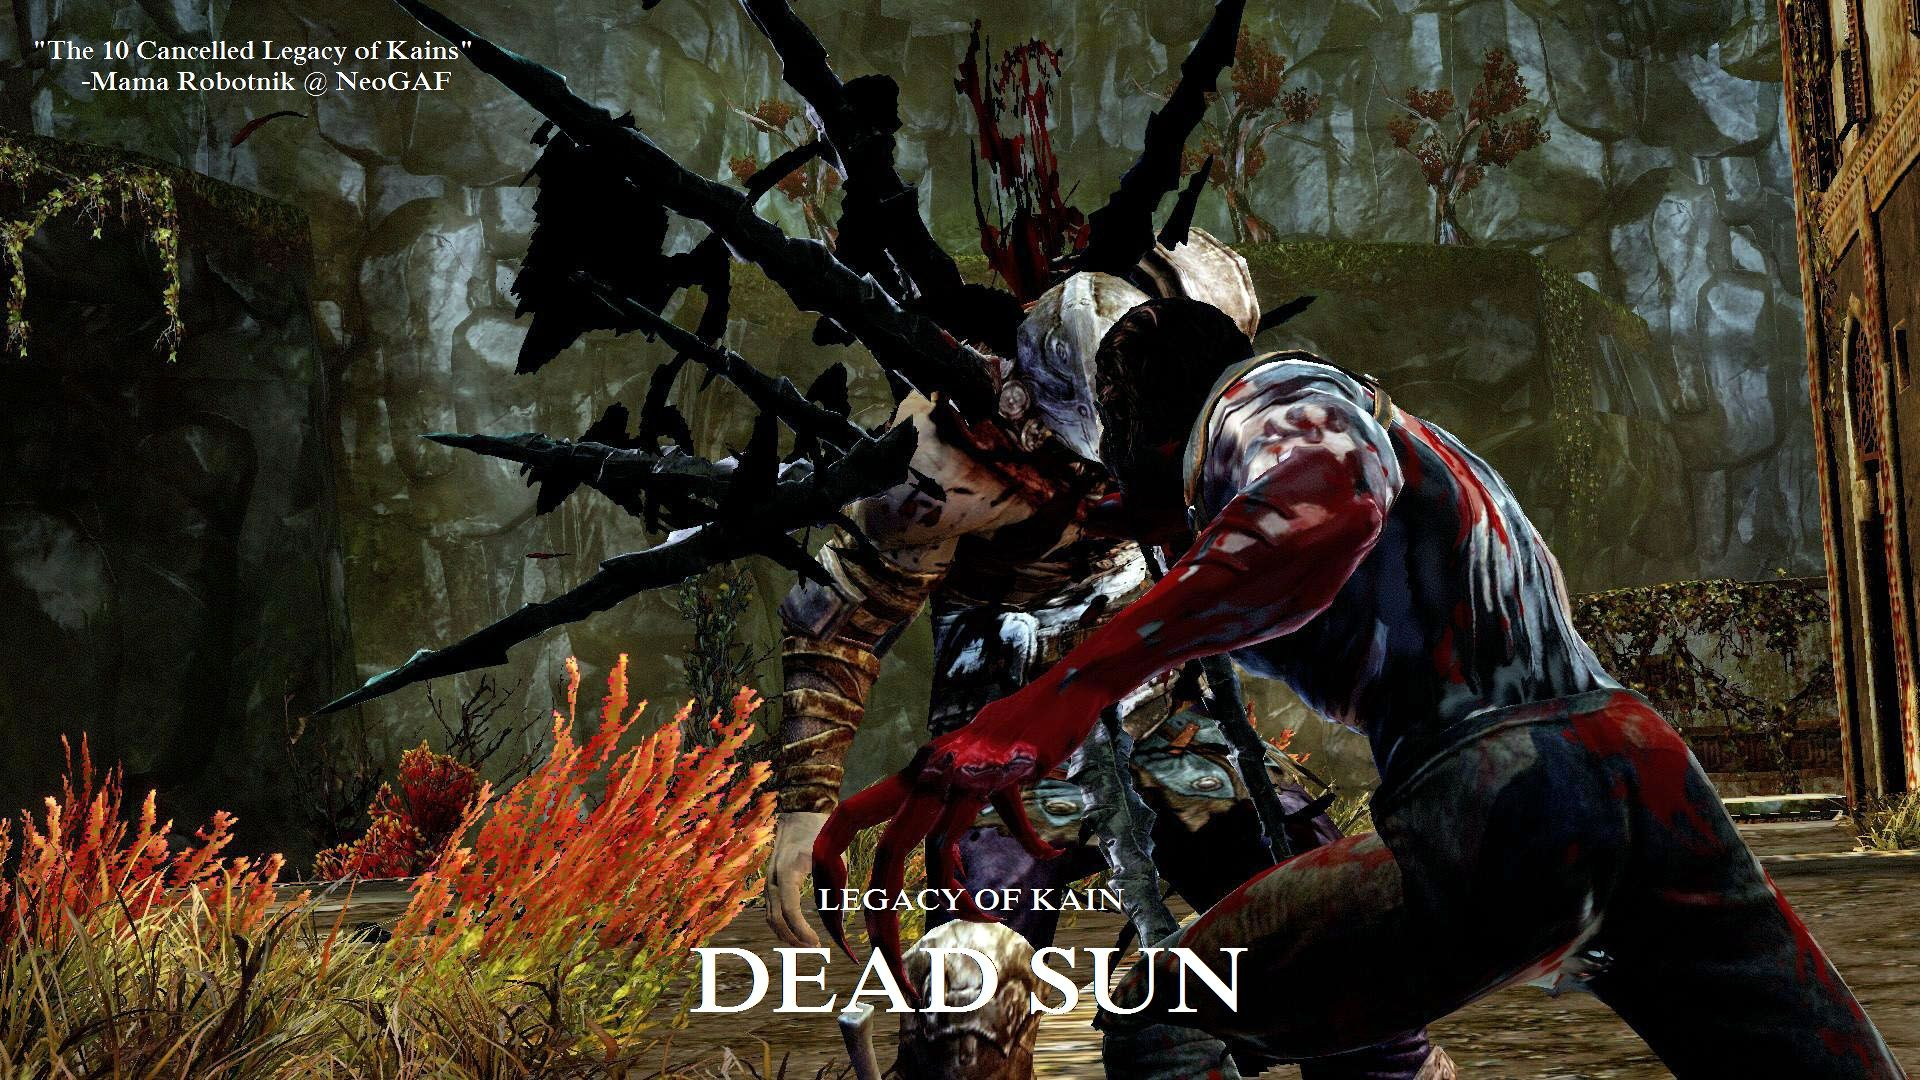 Dead Wallpaper With Quotes Legacy Of Kain Dead Sun Cancelled Ps3 Xbox 360 Pc